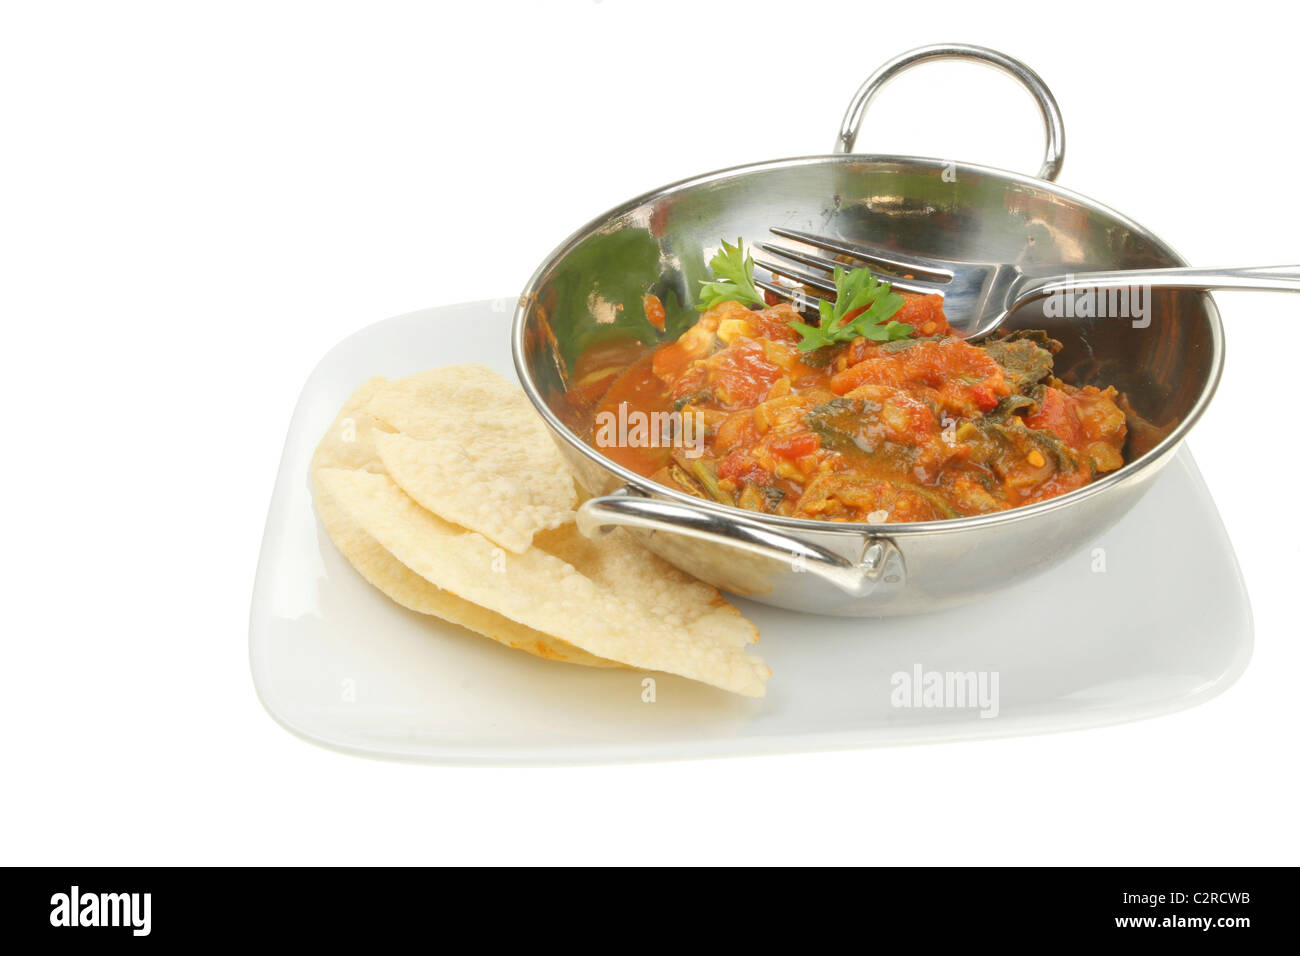 Curry and puppodoms on a plate isolated against white - Stock Image